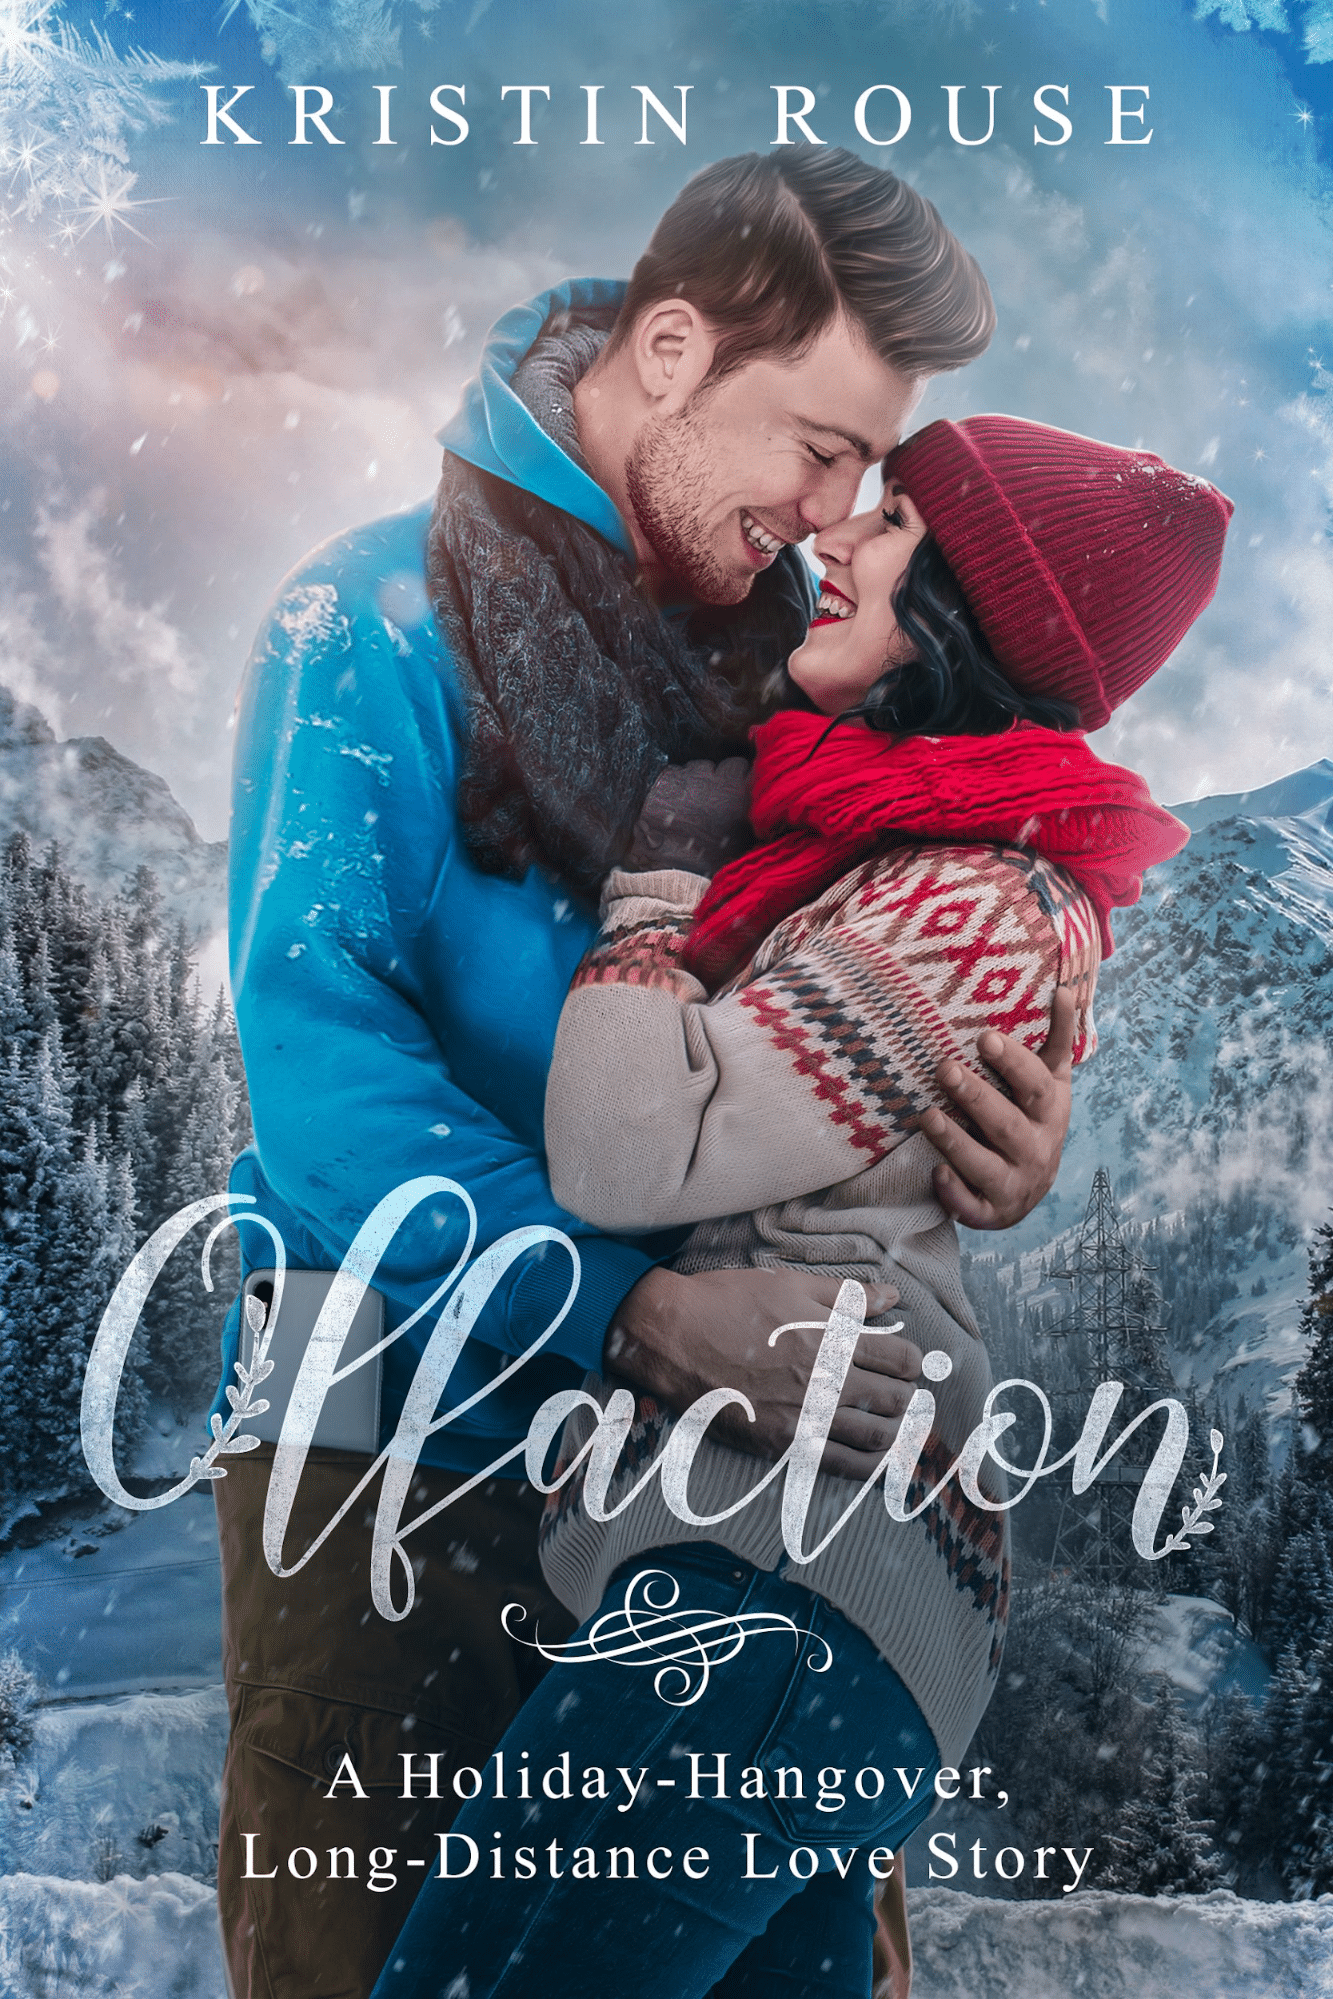 Kristin Rousse's Offaction as an example of Romance Book cover